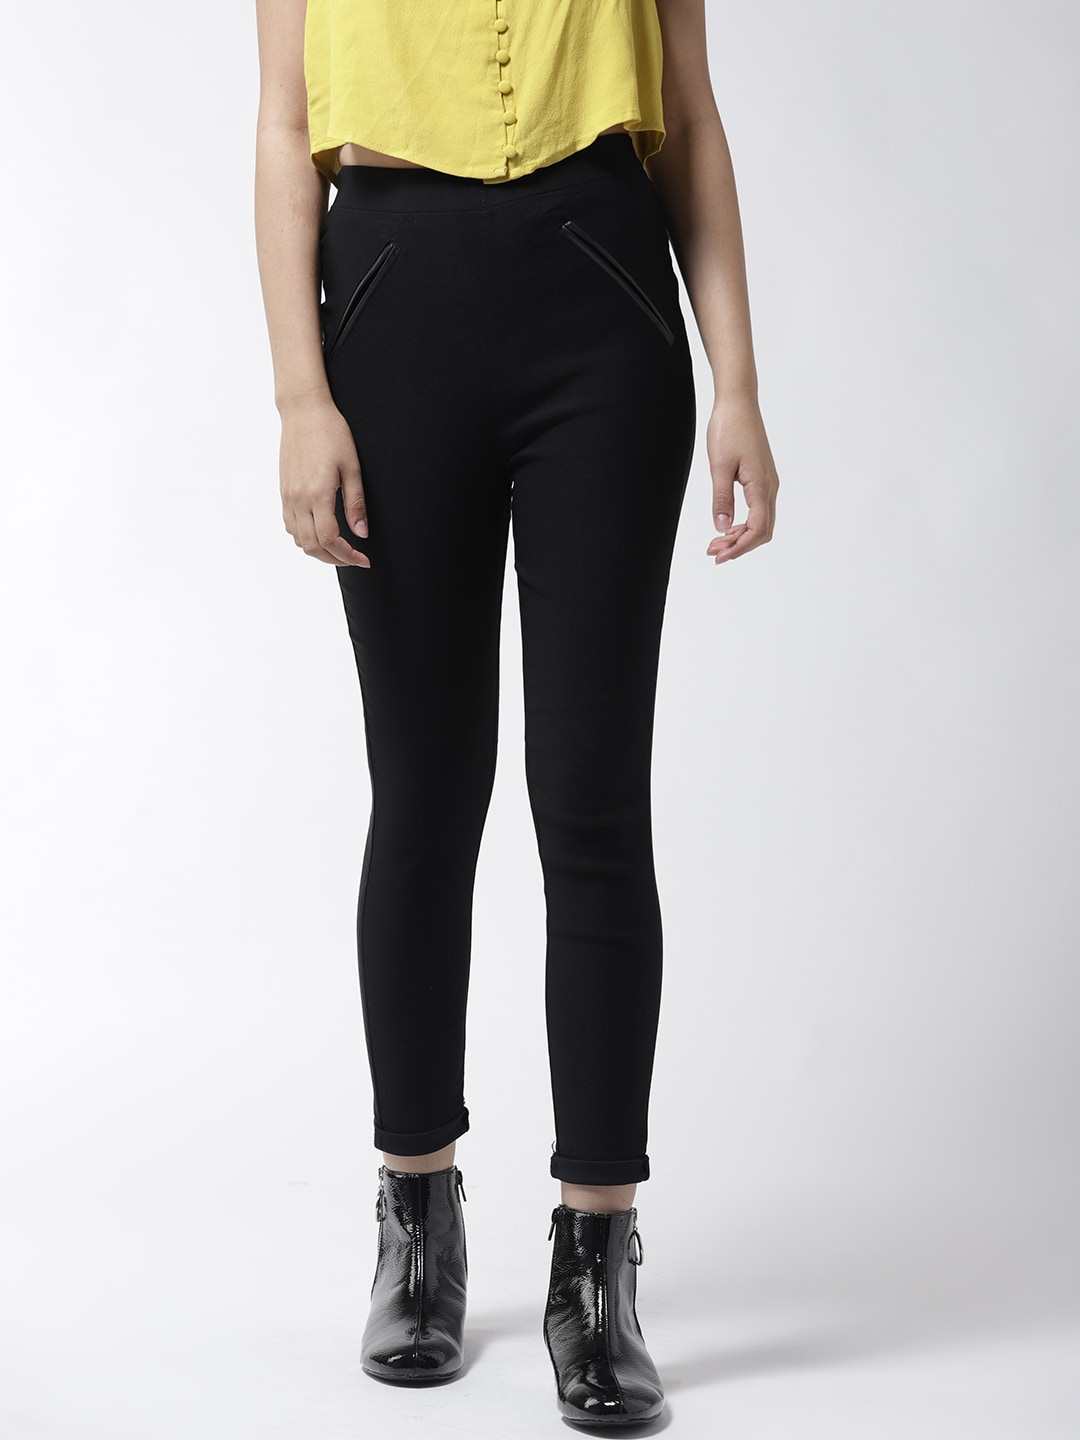 3f83e0000f6fb Jeggings - Buy Jeggings For Women Online from Myntra